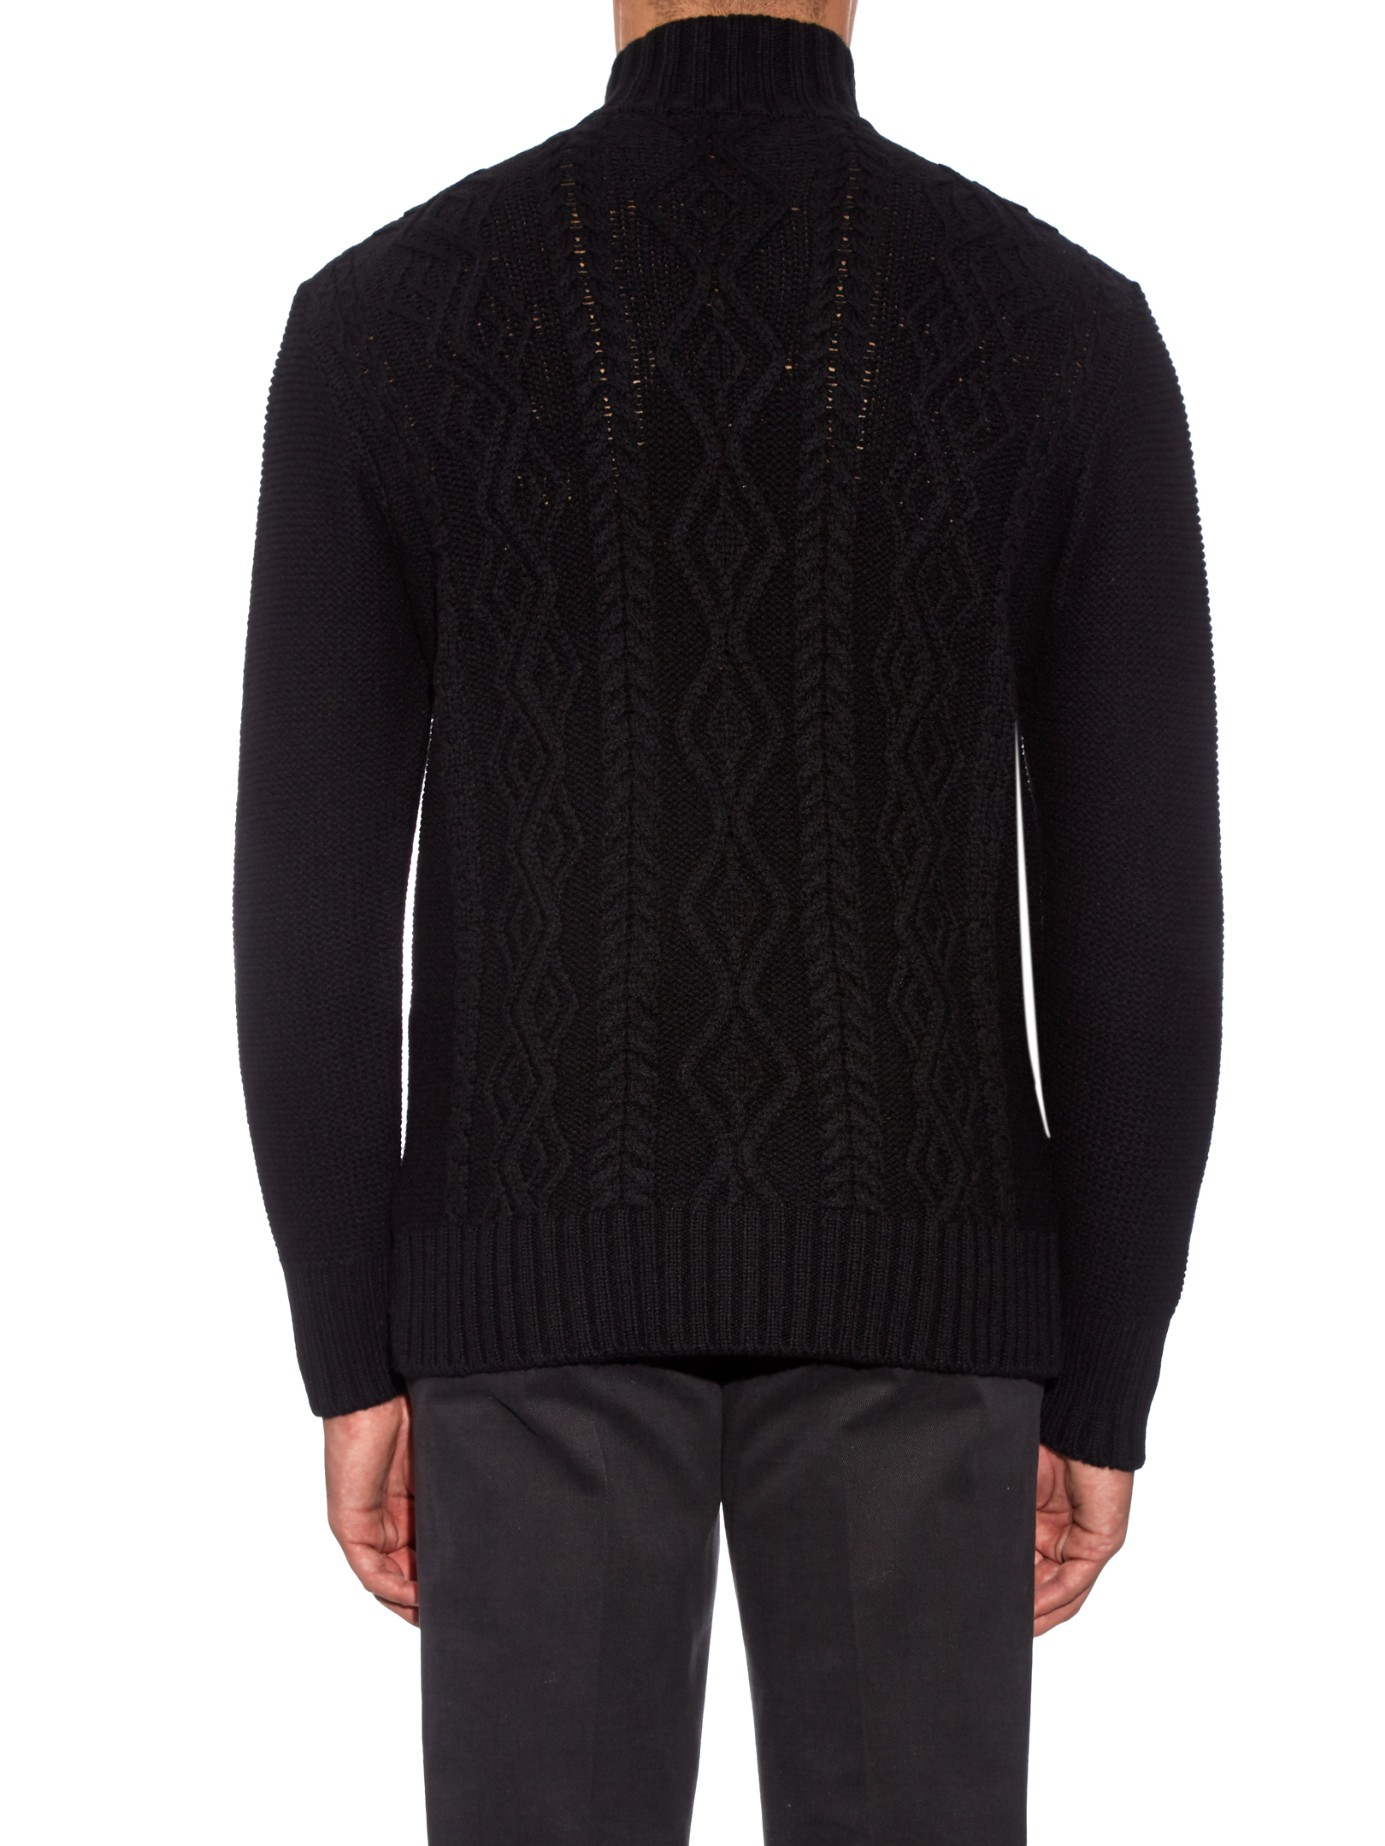 Inis meáin Aran-knit Merino-wool Sweater in Black for Men | Lyst